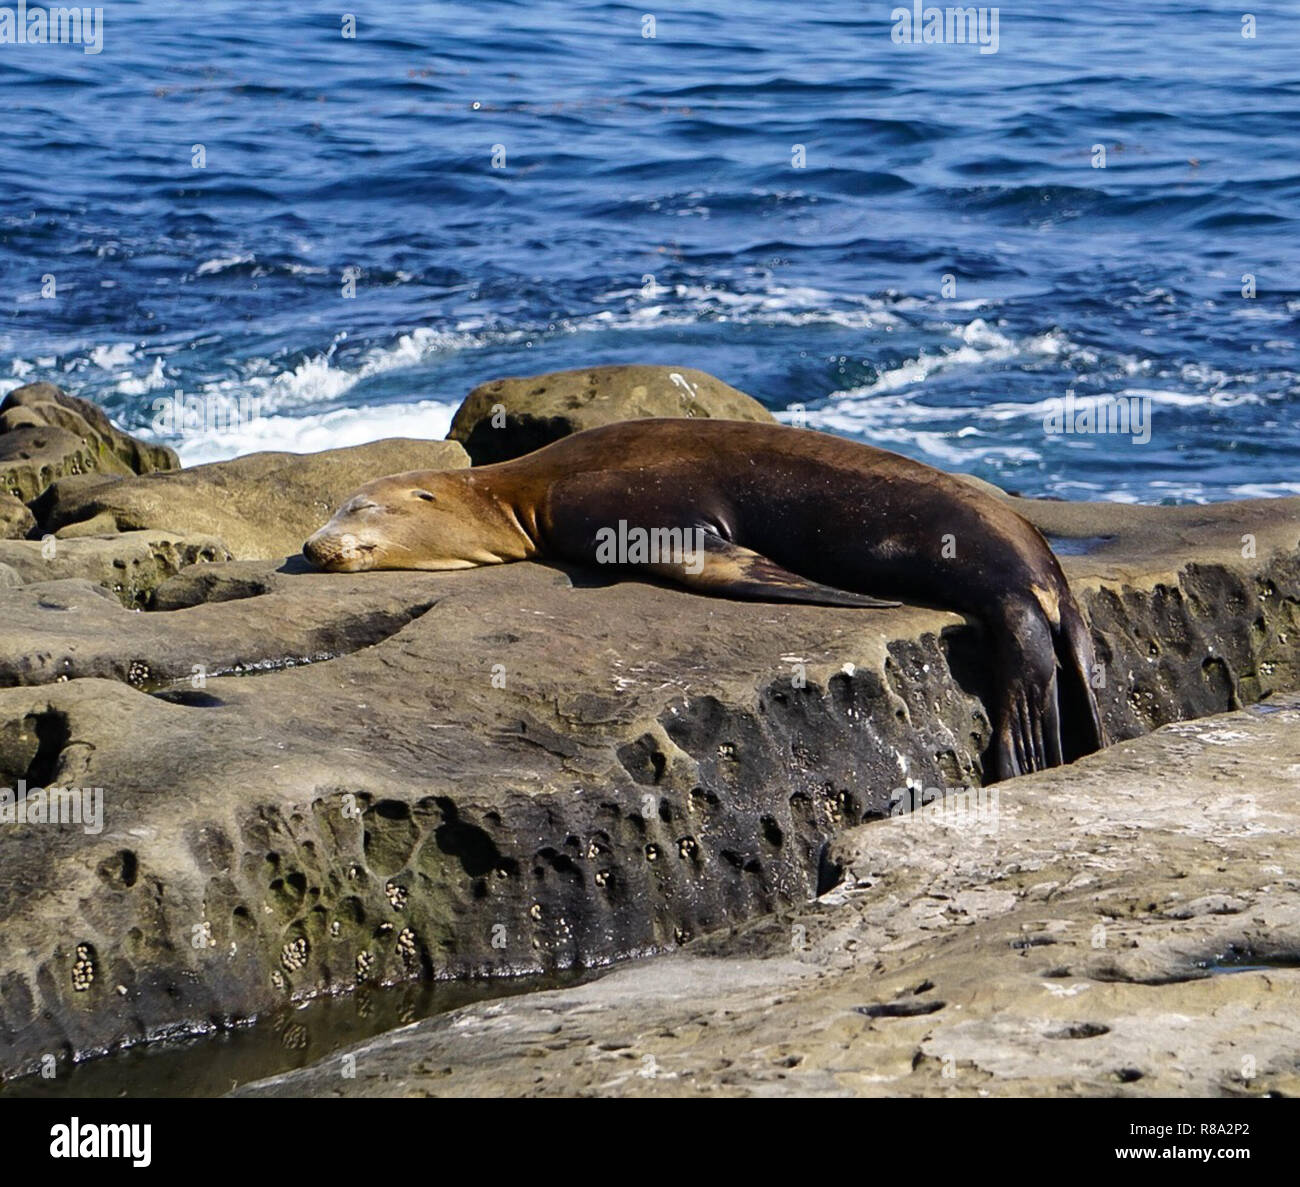 A Brown Sea Lion playing on the rocks at the ocean of the beach on the California Coast Stock Photo